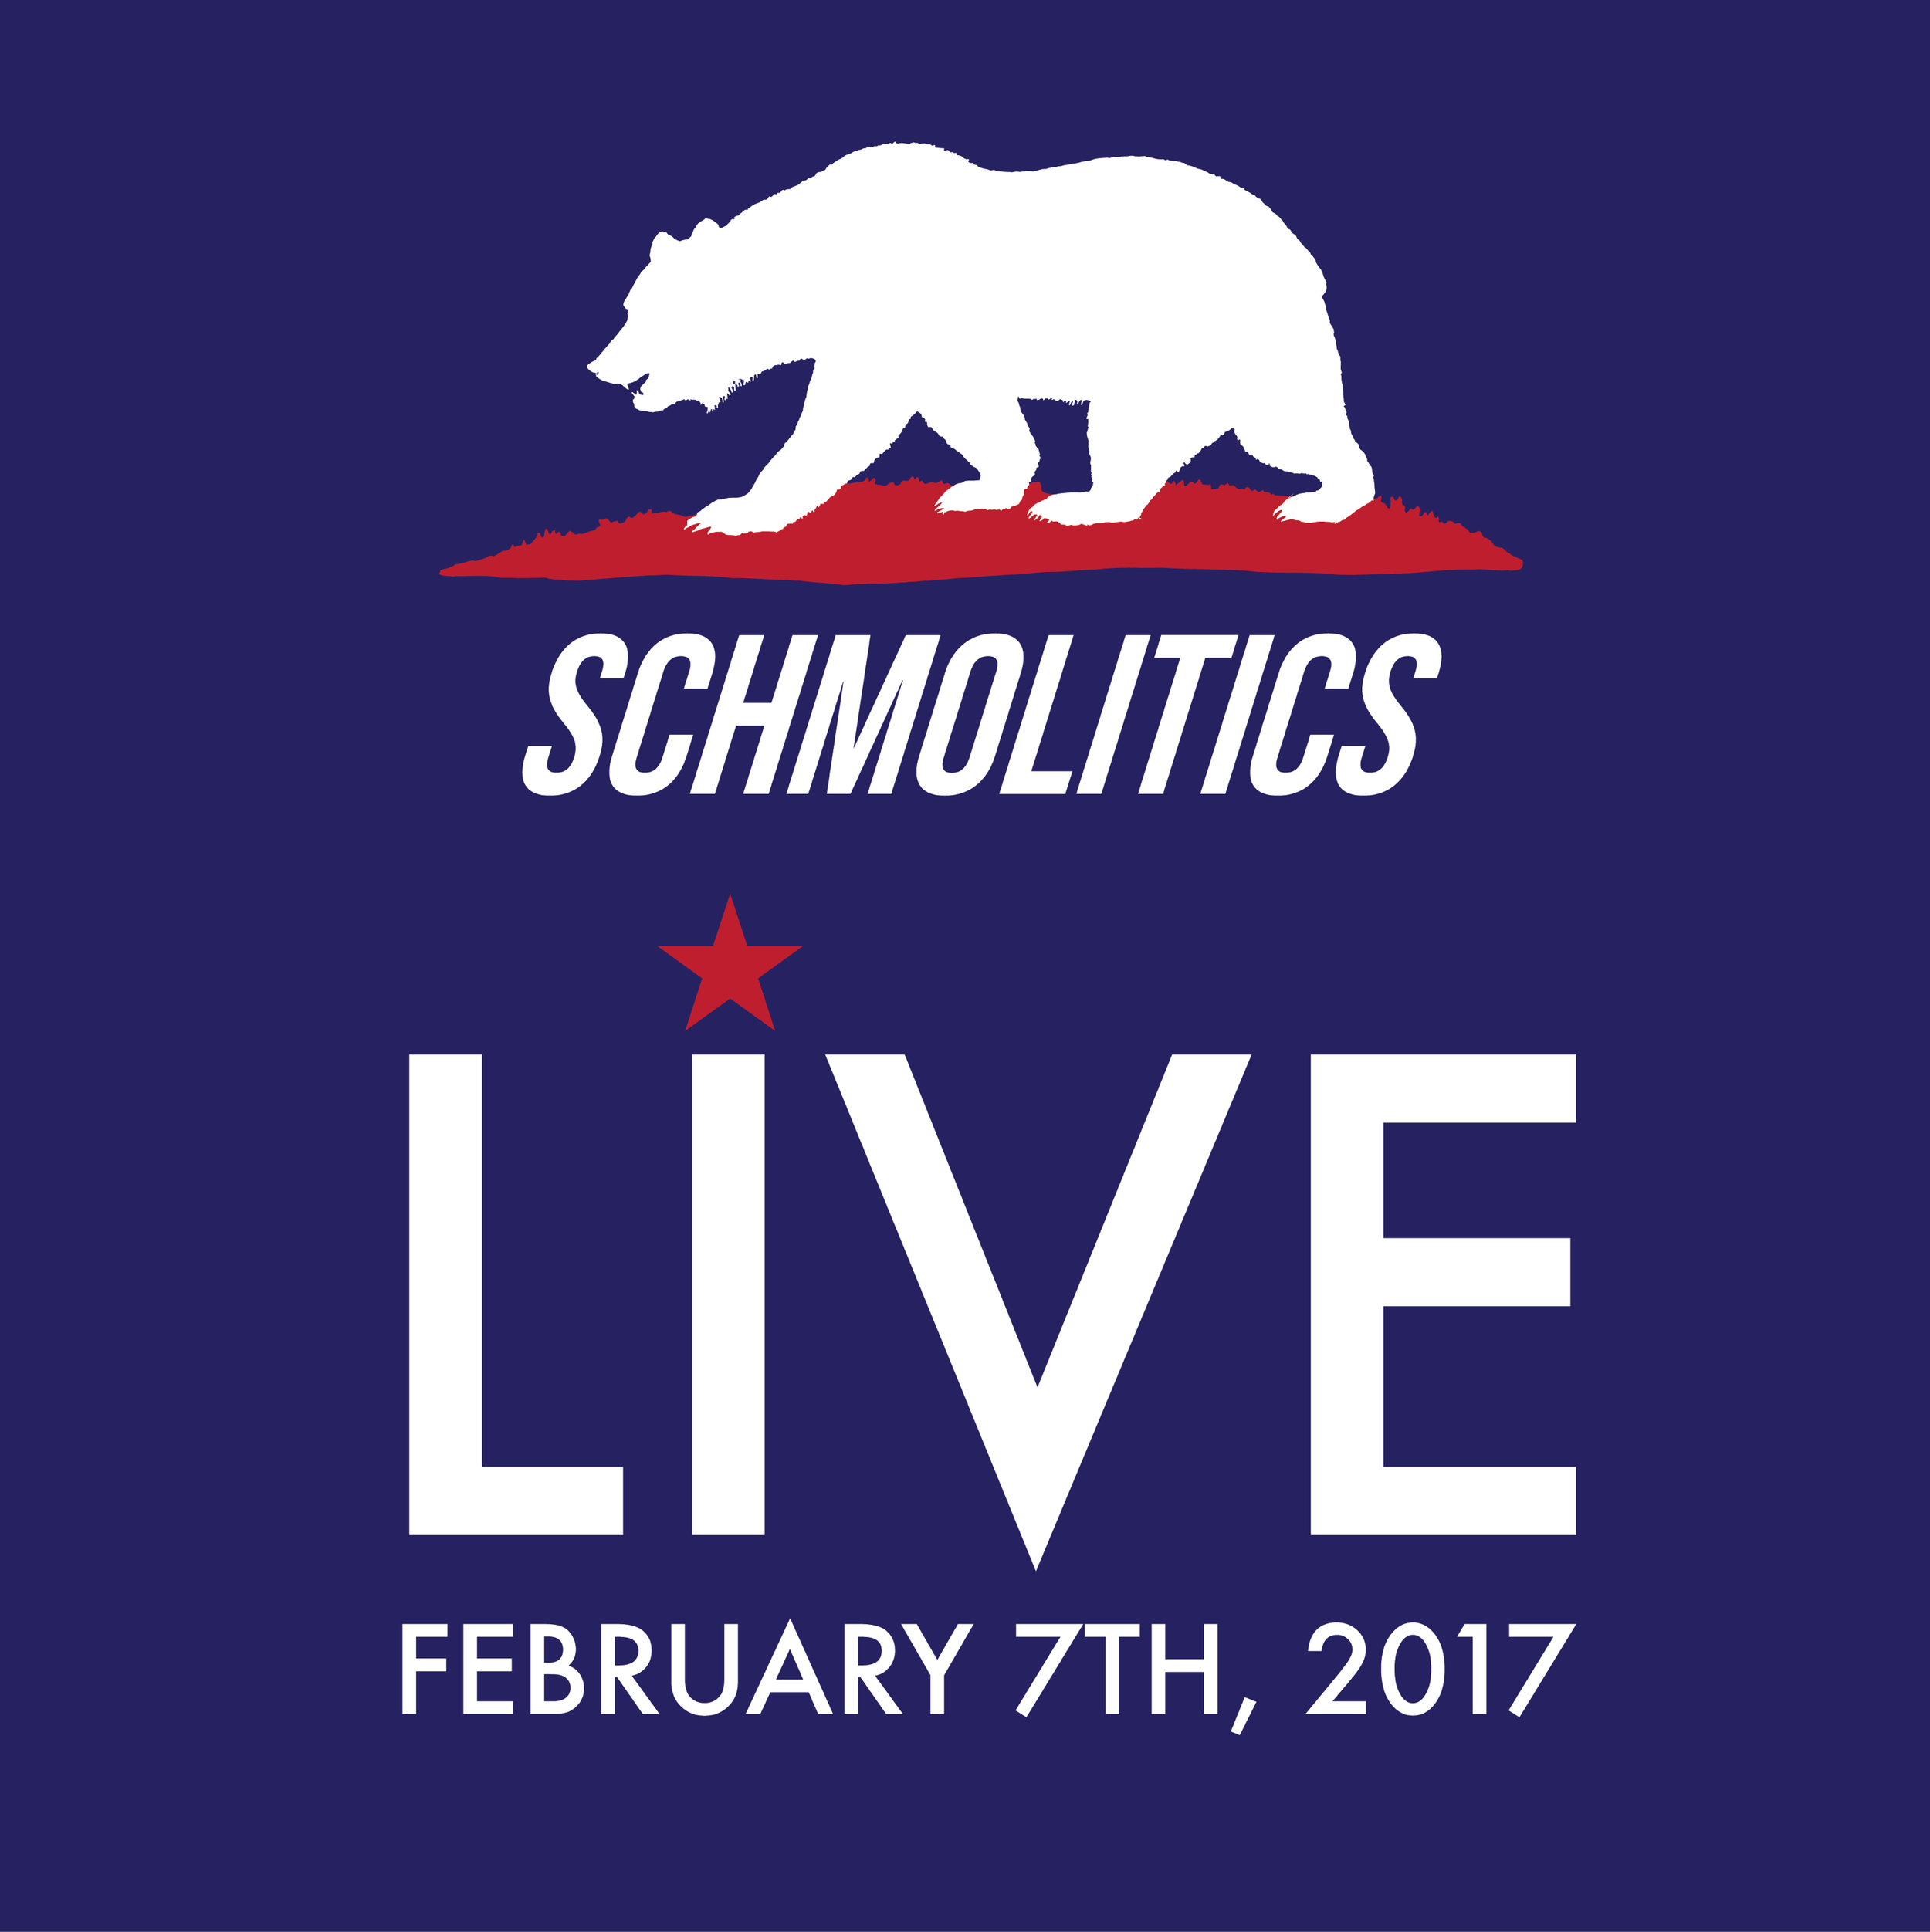 Schmolitics-Live-Tue-Feb-7-The-Virgil